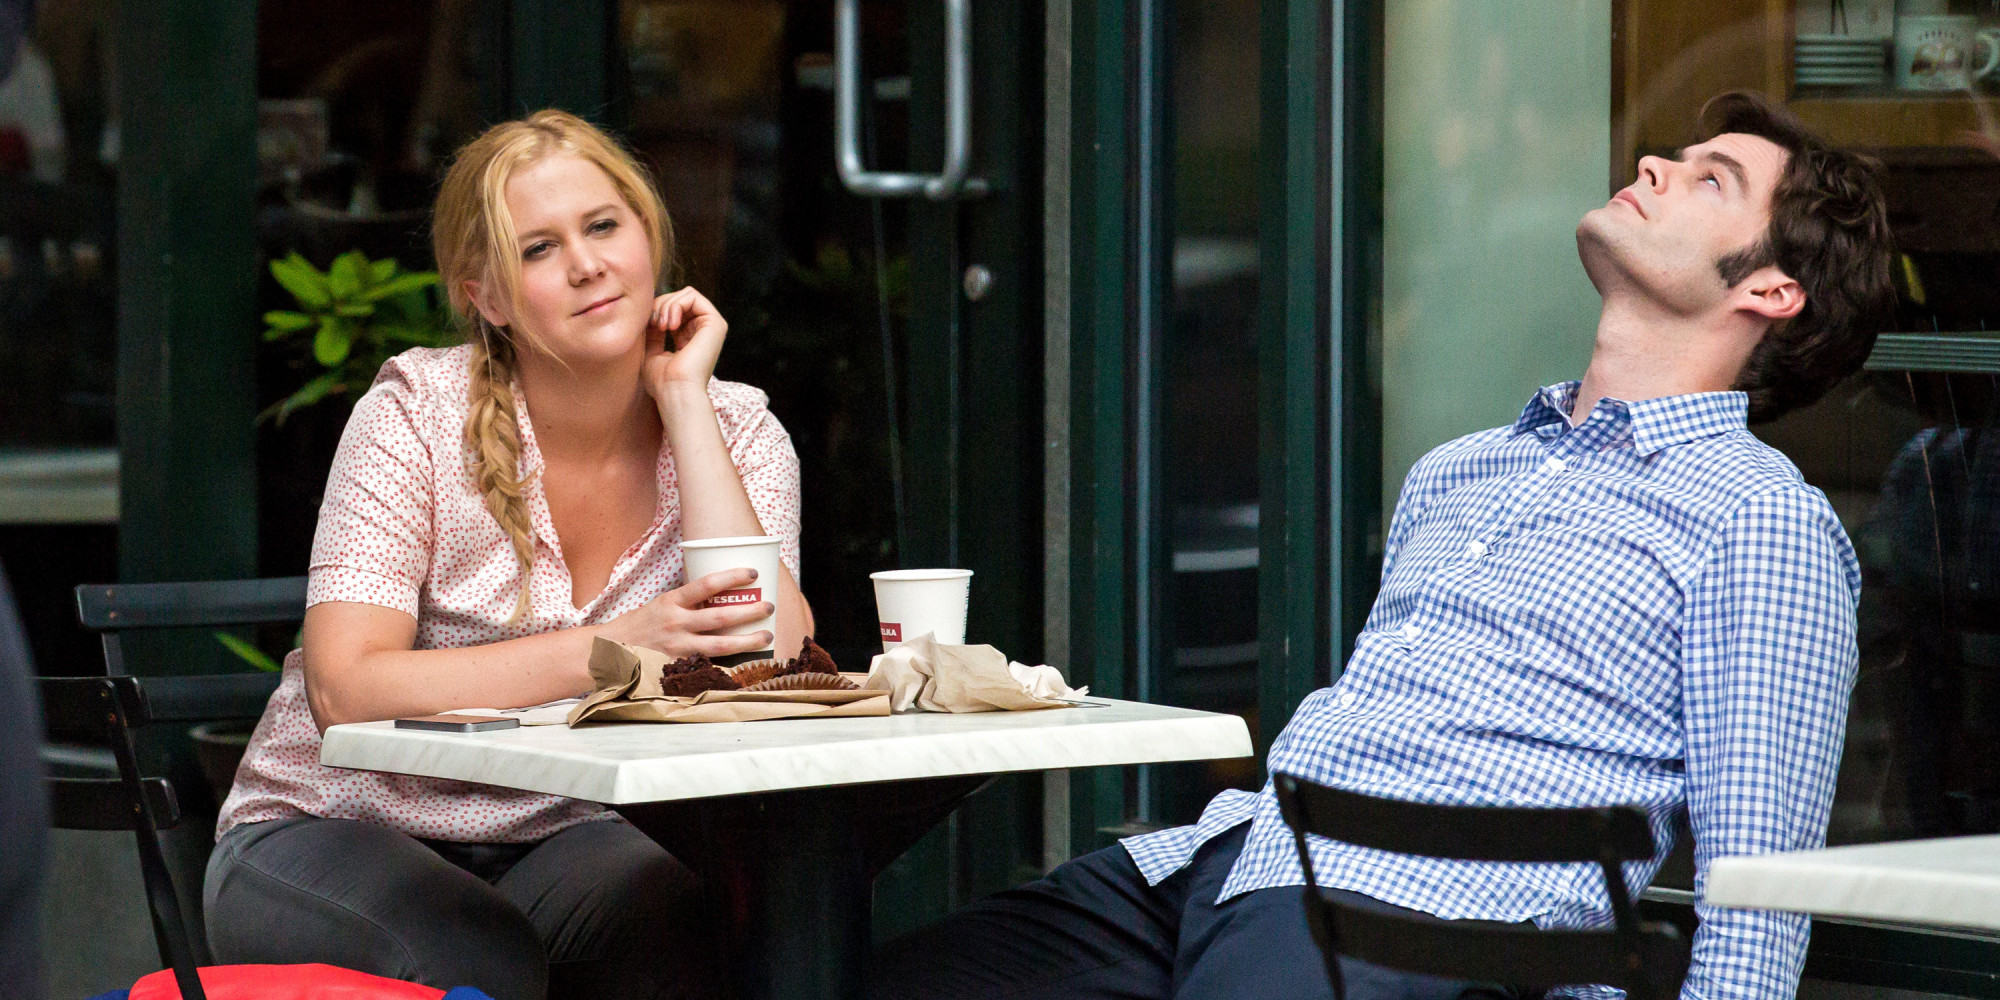 INTERVIEW: Amy Schumer, Judd Apatow, and the Trainwreck Comedy ...